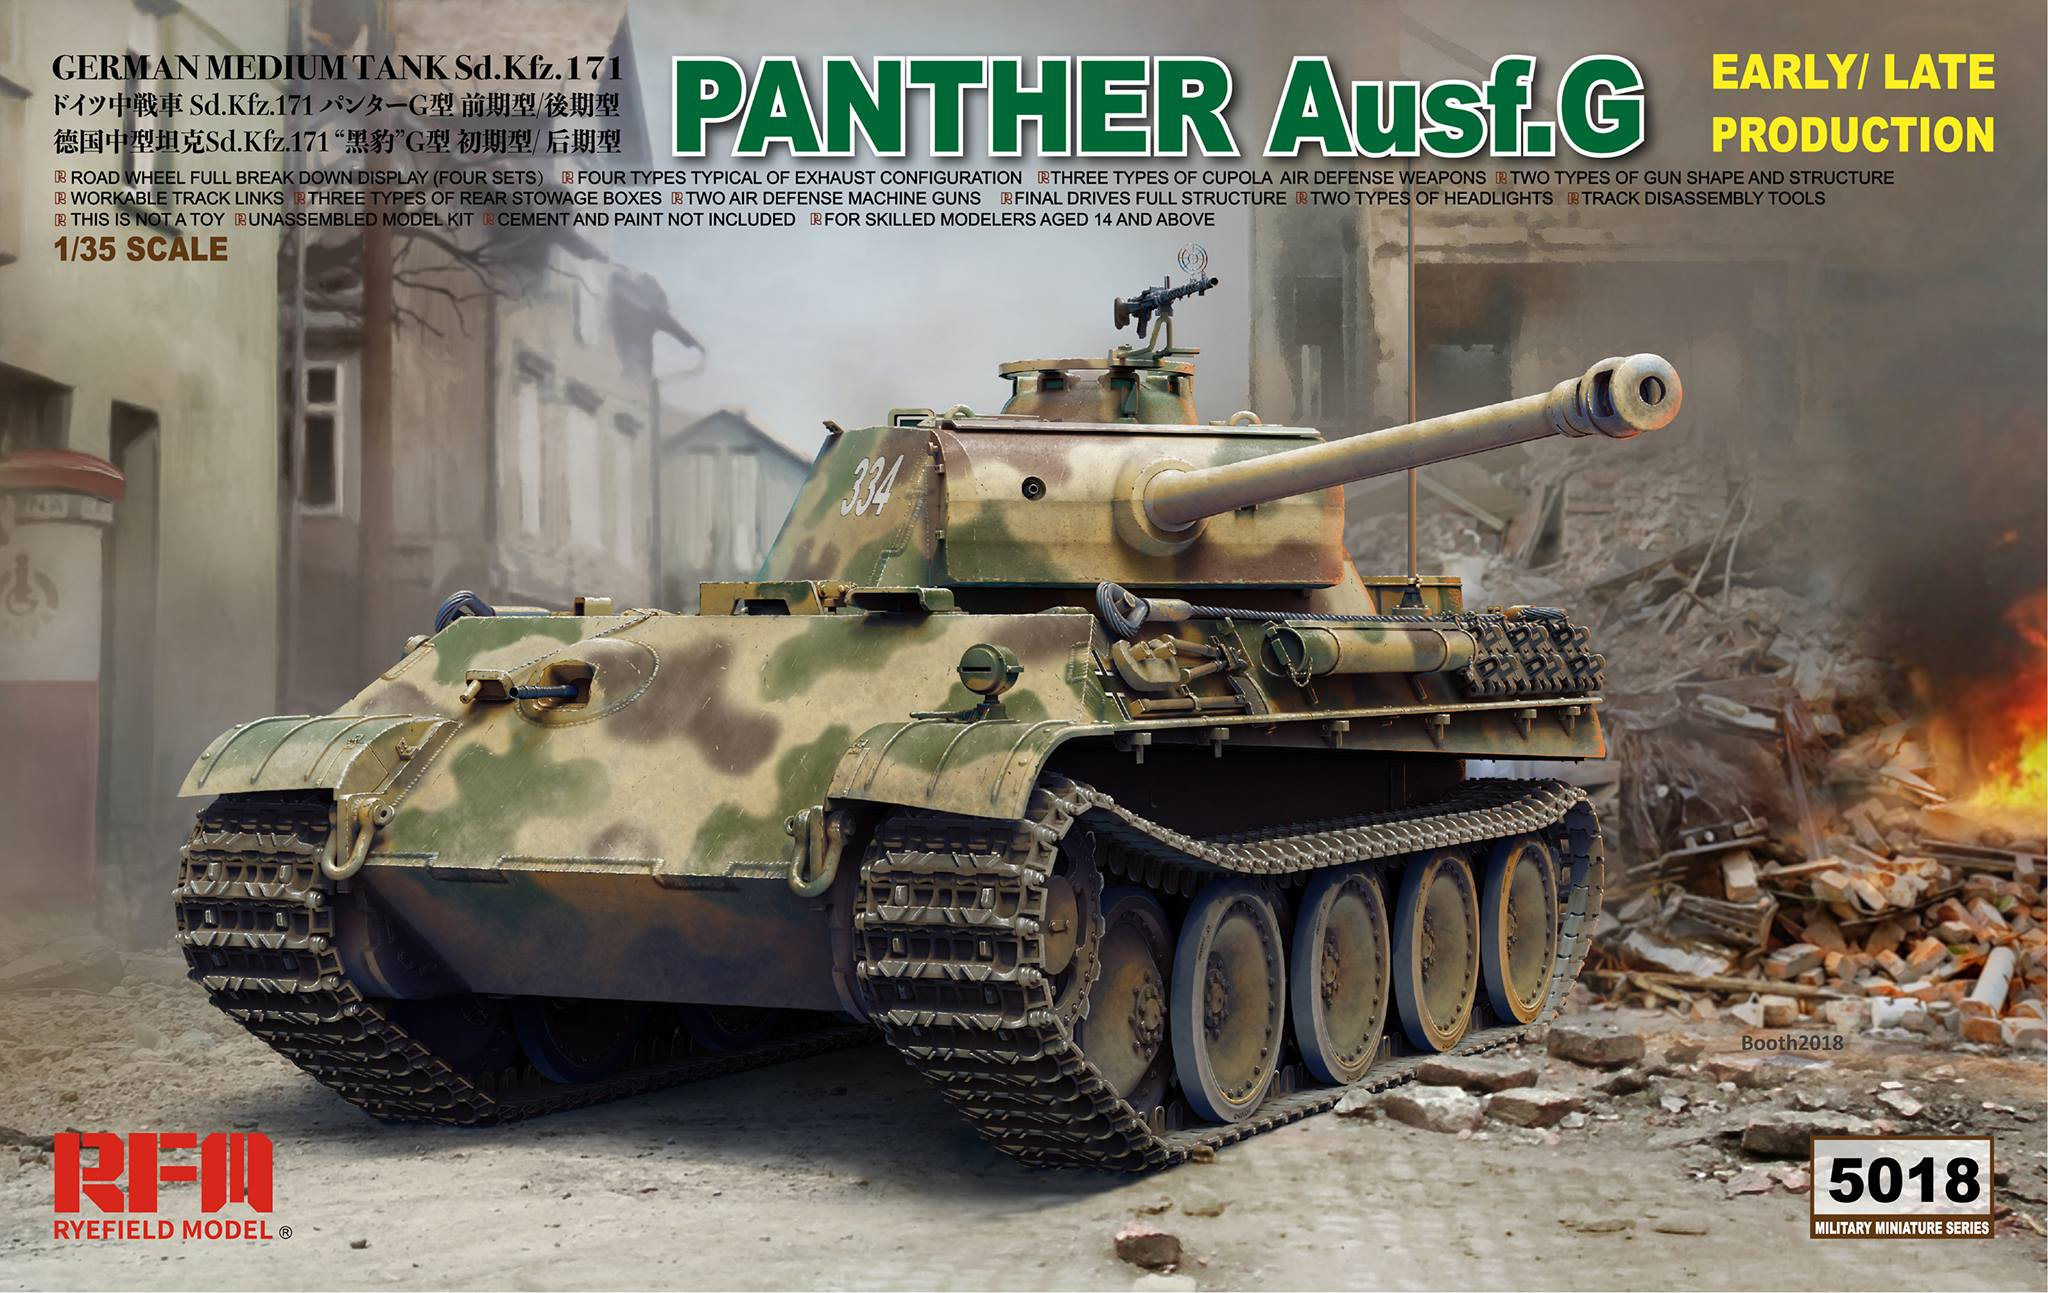 RM-5018 Panther Ausf.G with workable track links & a canvas cover of muzzle brake part